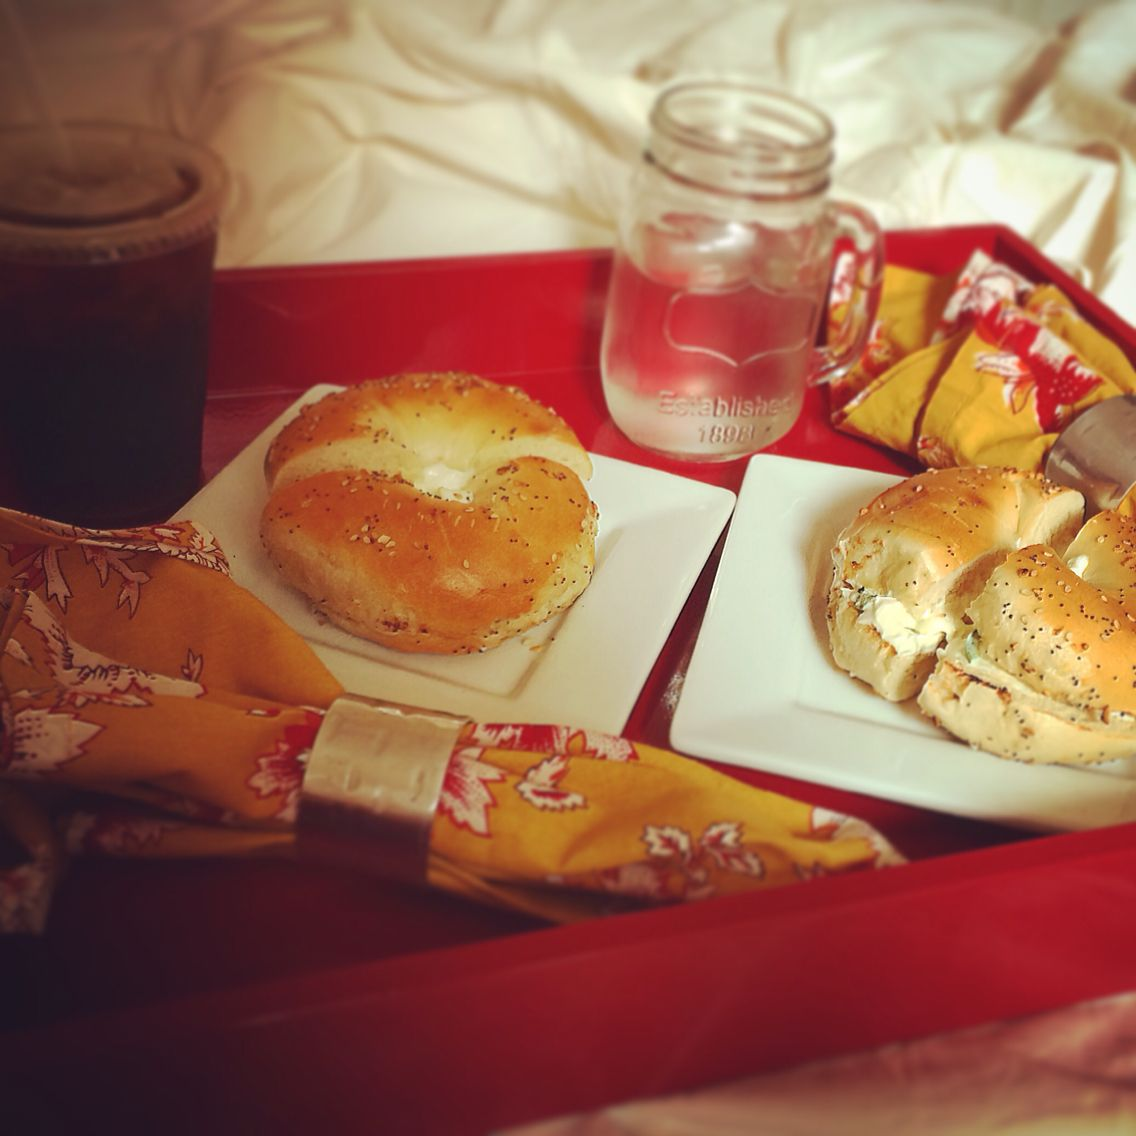 everything bagel with jalapeño cream cheese x two #homesweethome #breakfastinbed #luckygirl #bagels